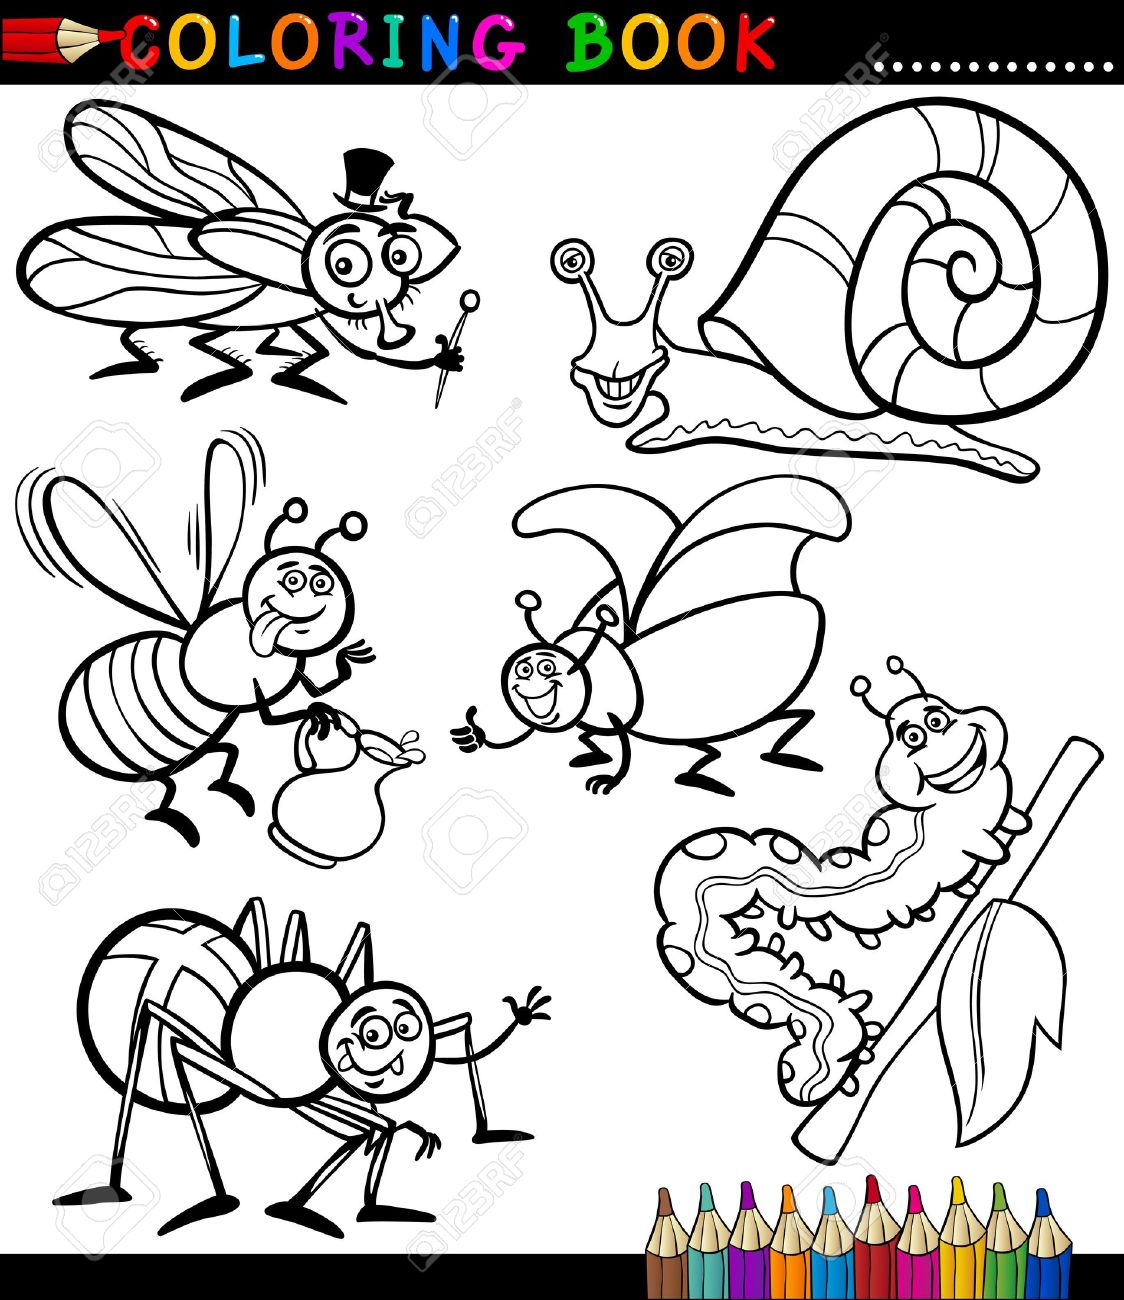 housefly black and white coloring book or page cartoon illustration set of funny insects and